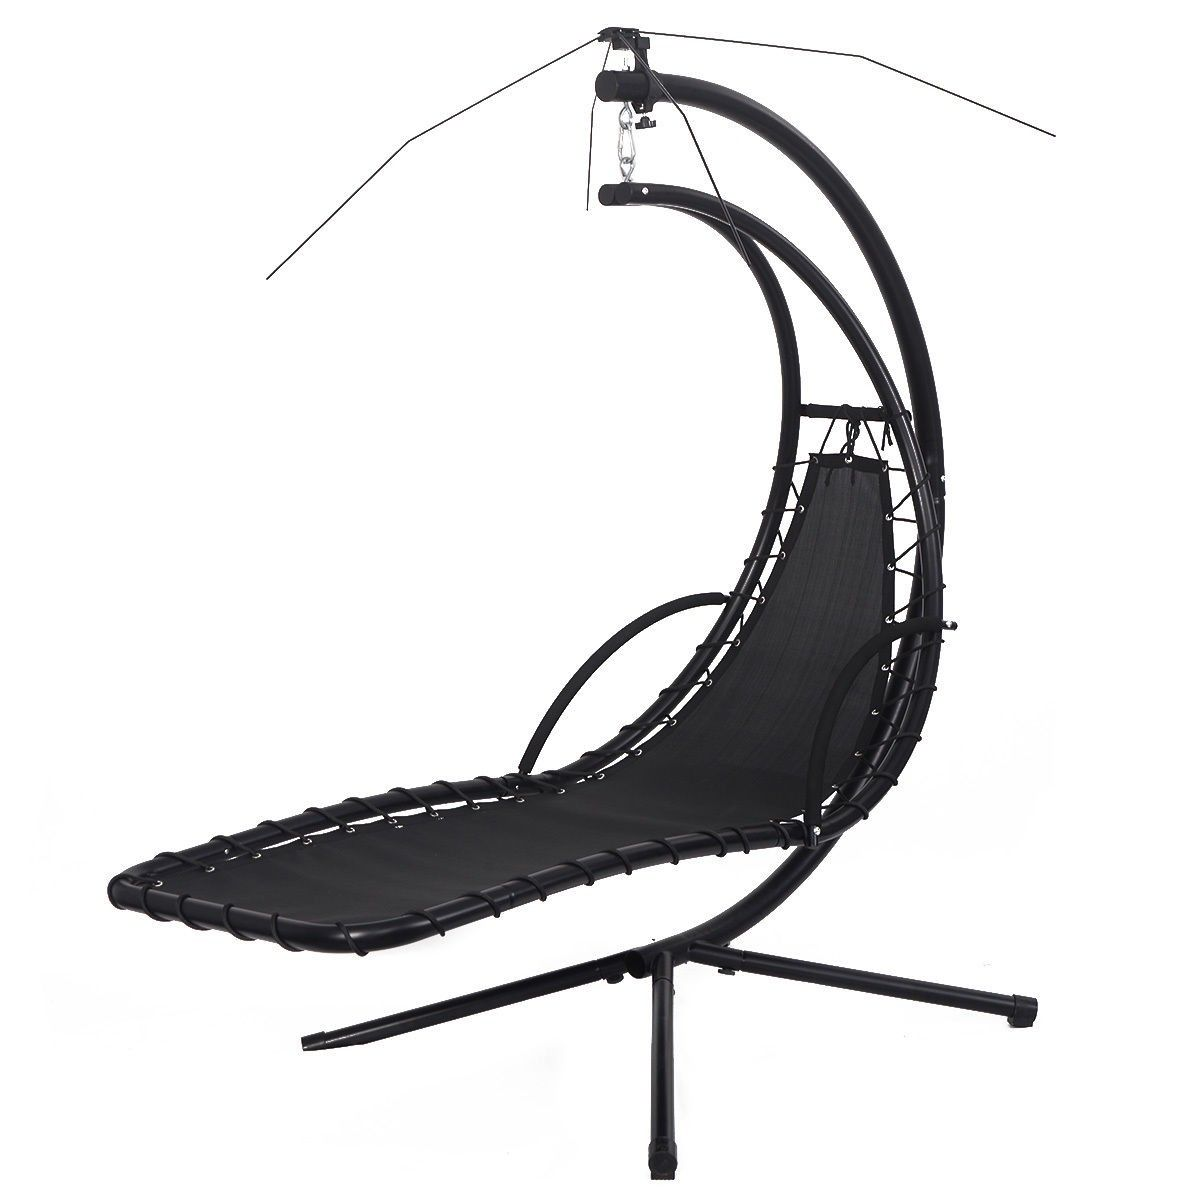 Hanging Chaise Lounge Chair Arc Stand Air Porch Swing Hammock Canopy Orange - Lawn u0026 Garden  sc 1 st  Pinterest & Hanging Chaise Lounge Chair Arc Stand Air Porch Swing Hammock ...